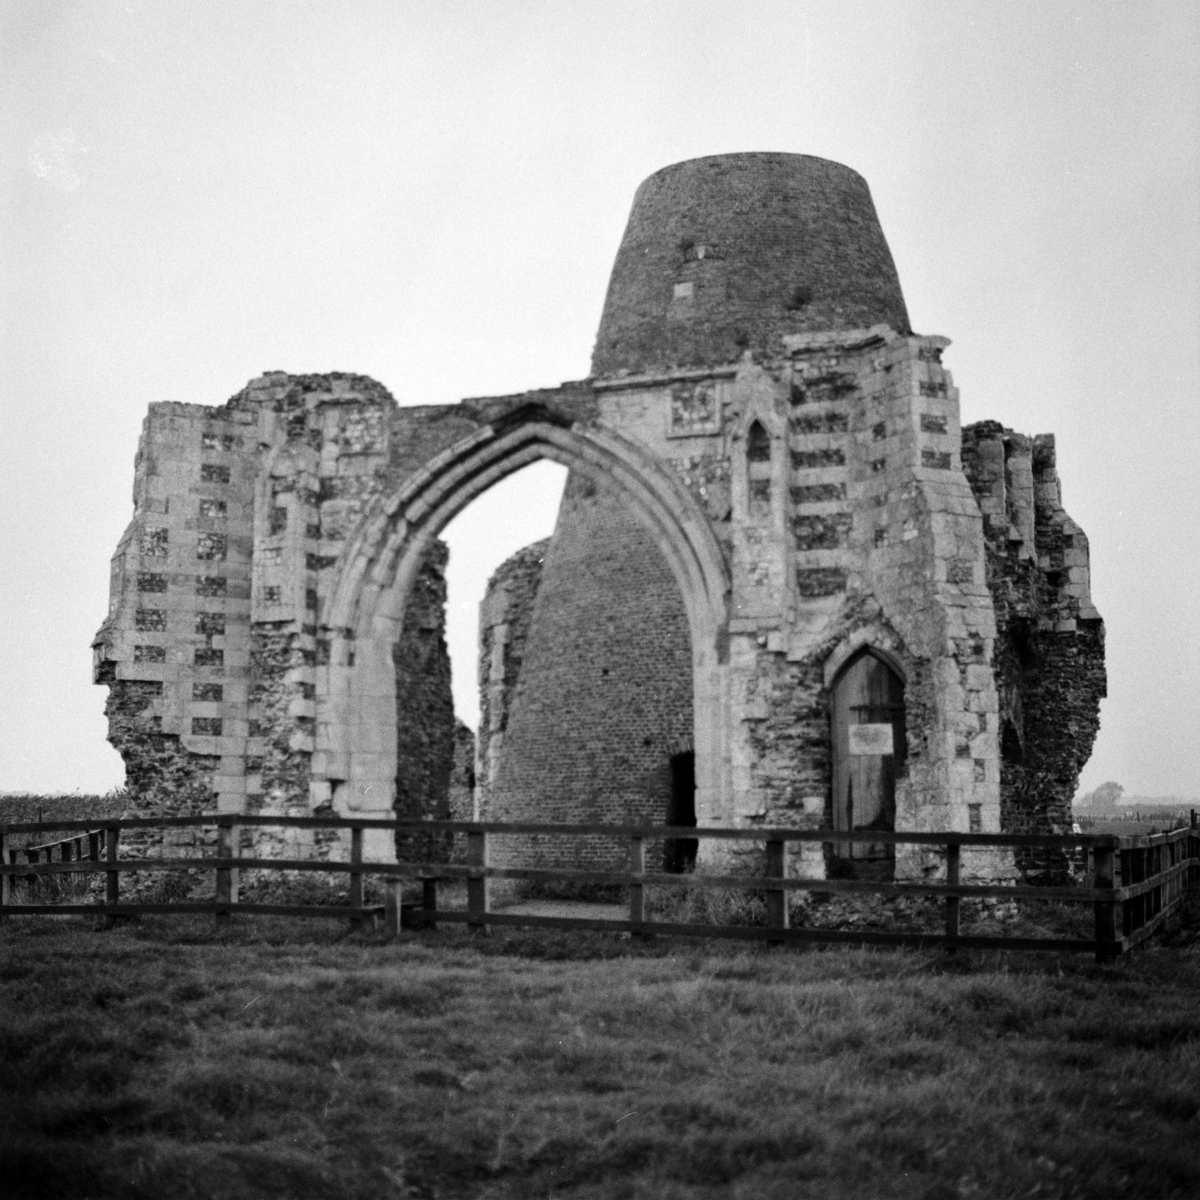 Photograph of St Benet's Abbey in Ludham